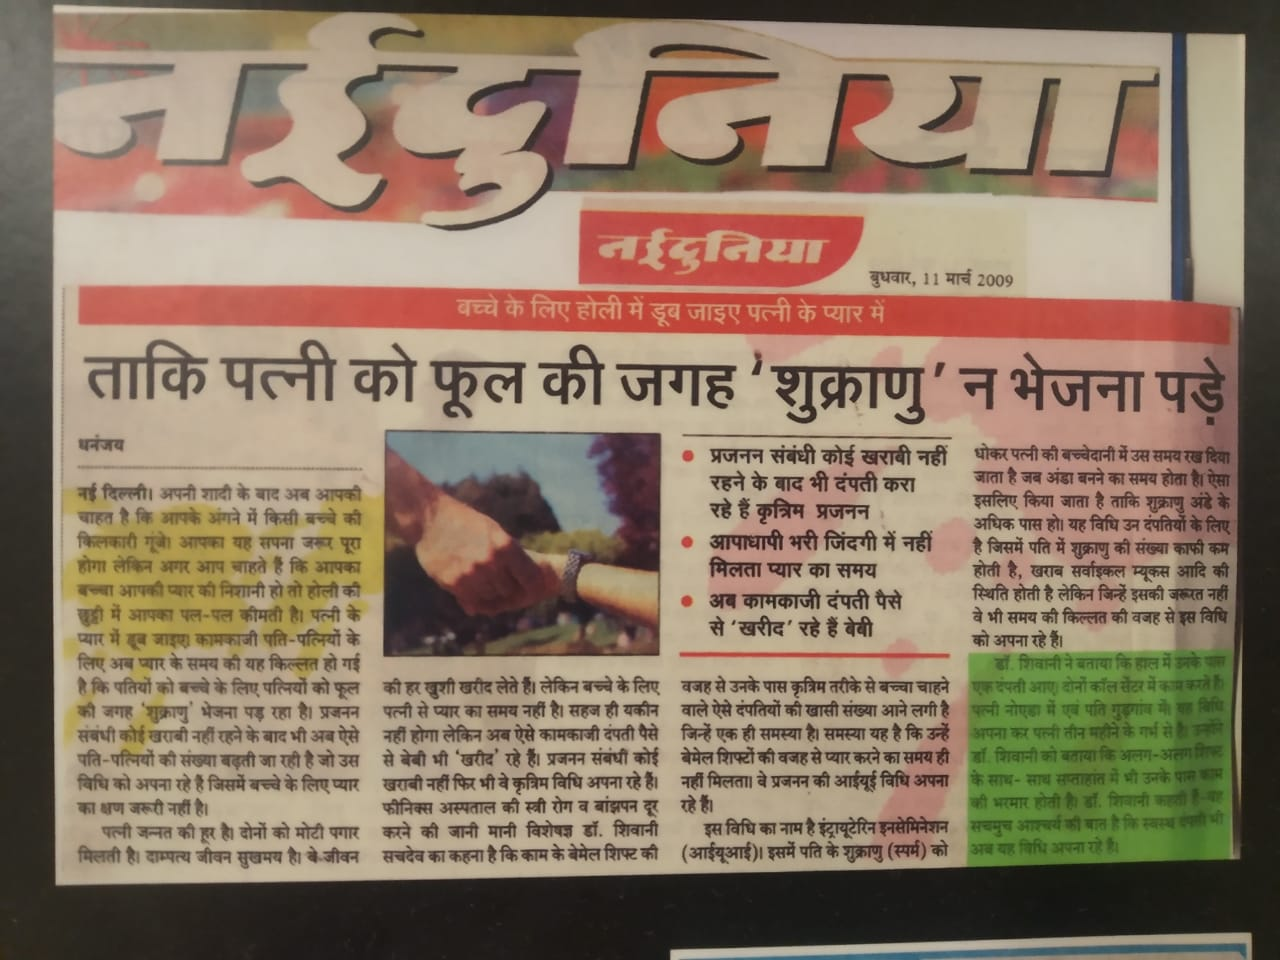 Dr Shivani Sachdev Gour Interview Post in Nai Duniya Hindi